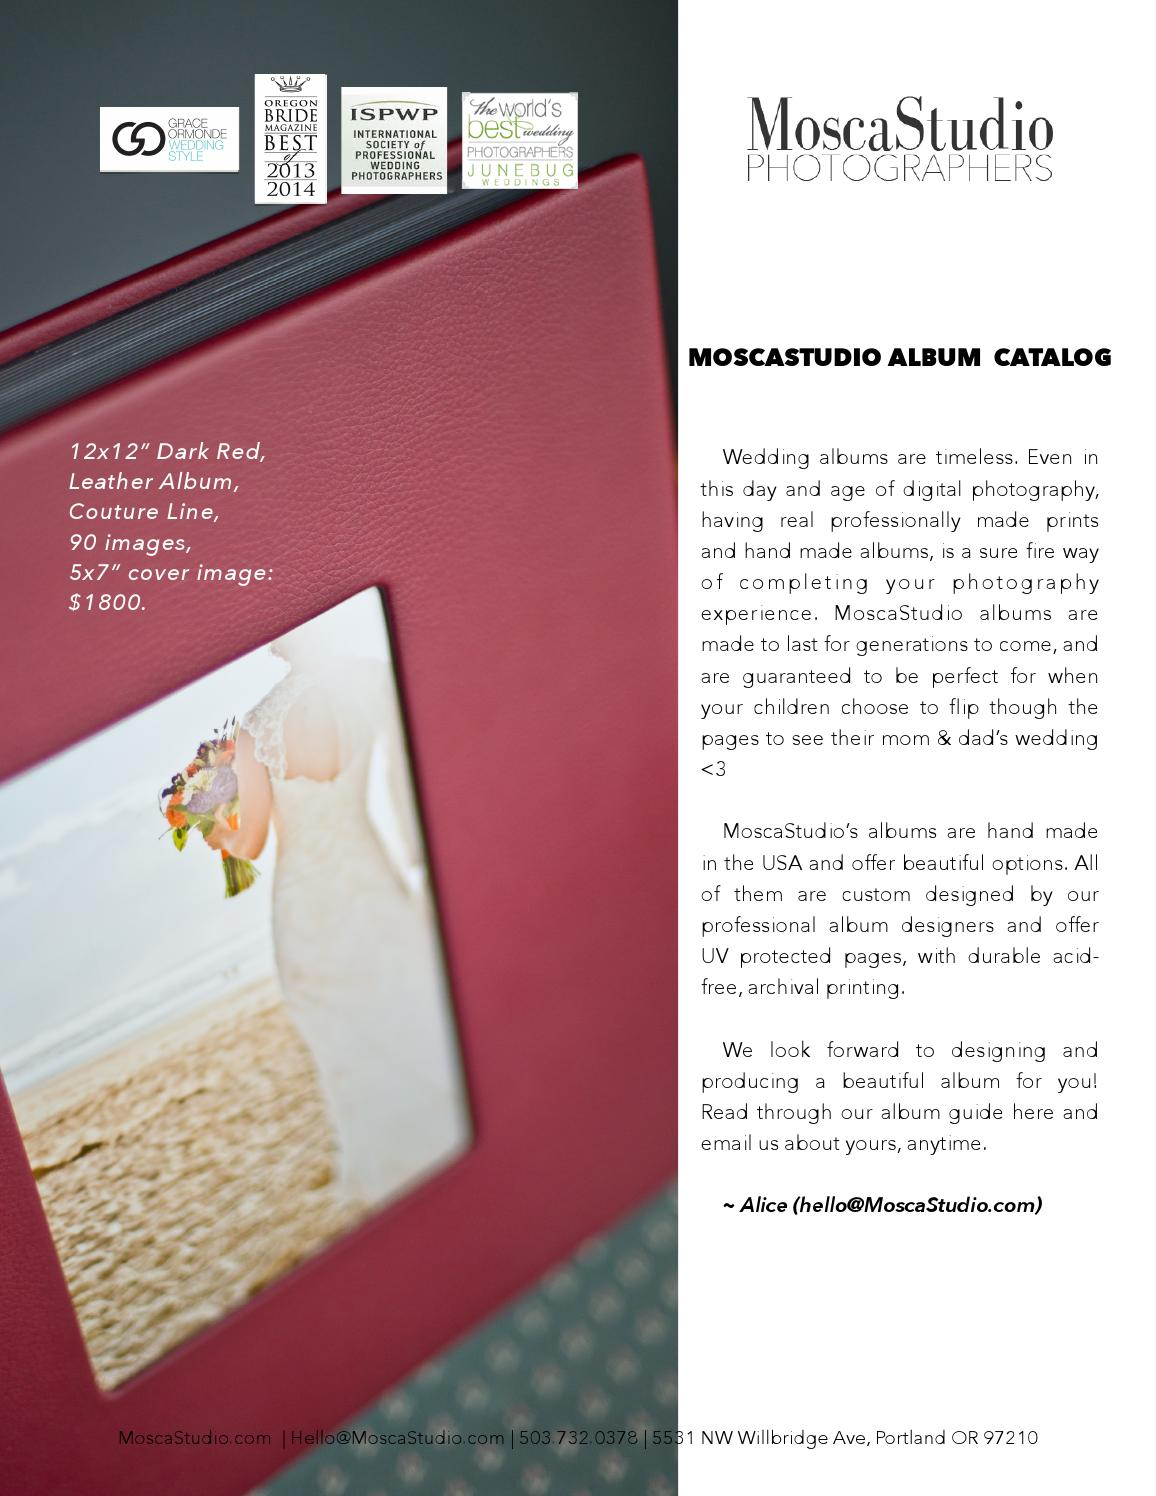 Moscastudio Wedding Albums Catalog By Moscastudio Issuu